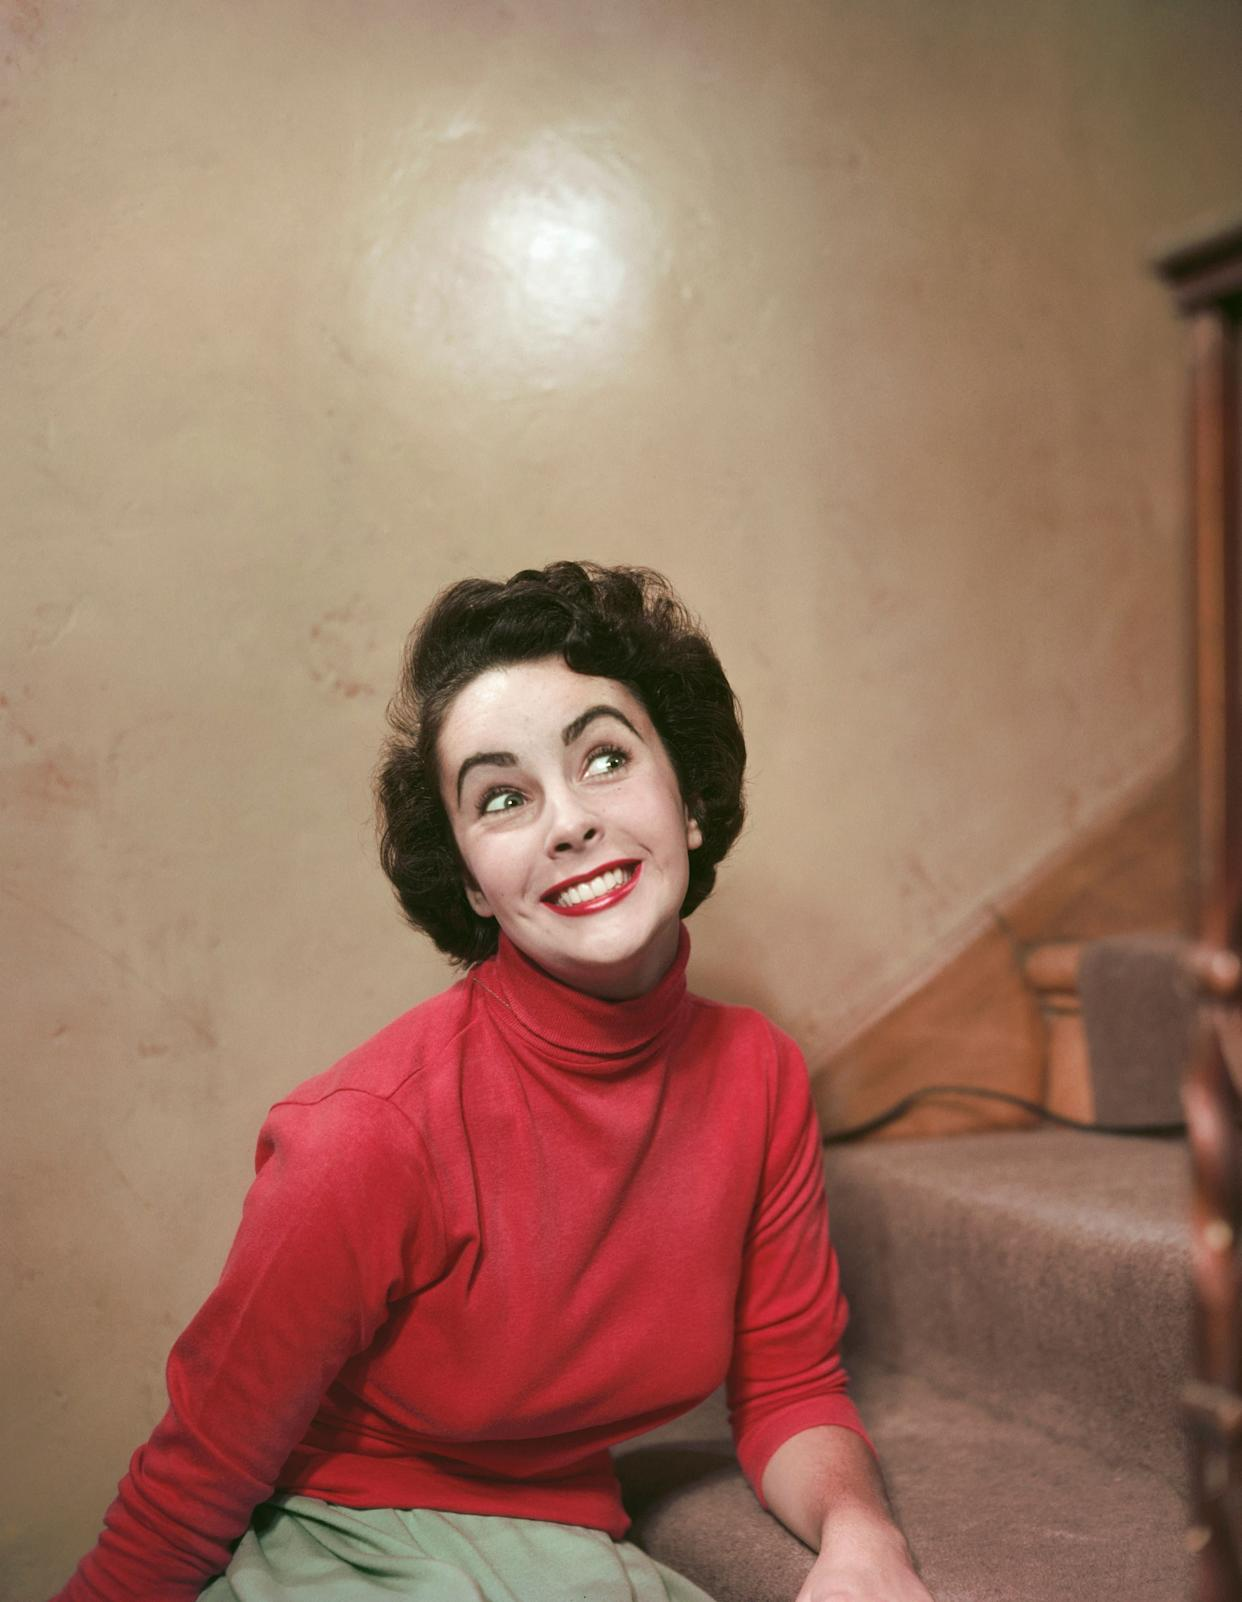 The actress offers a big smileon a stairway in a red turtleneck, sometime in the '50s.